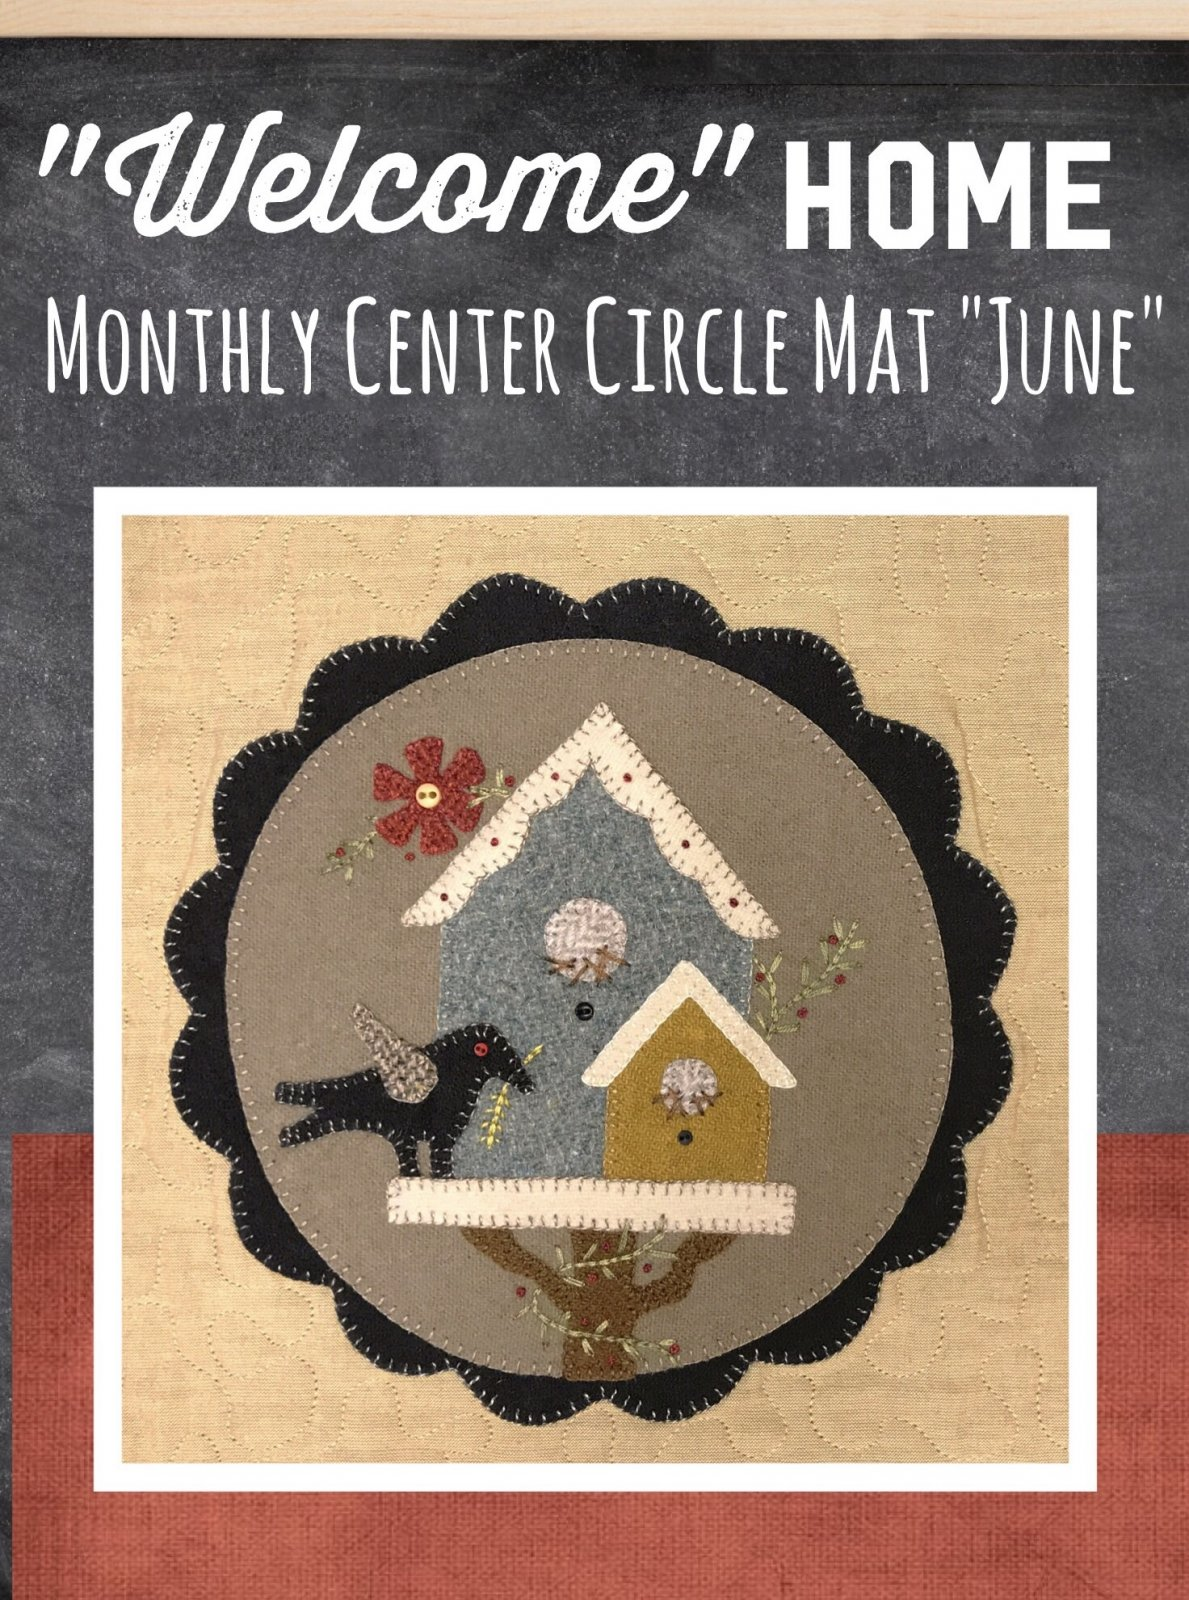 Welcome HOME June Center Circle KIT & Pattern